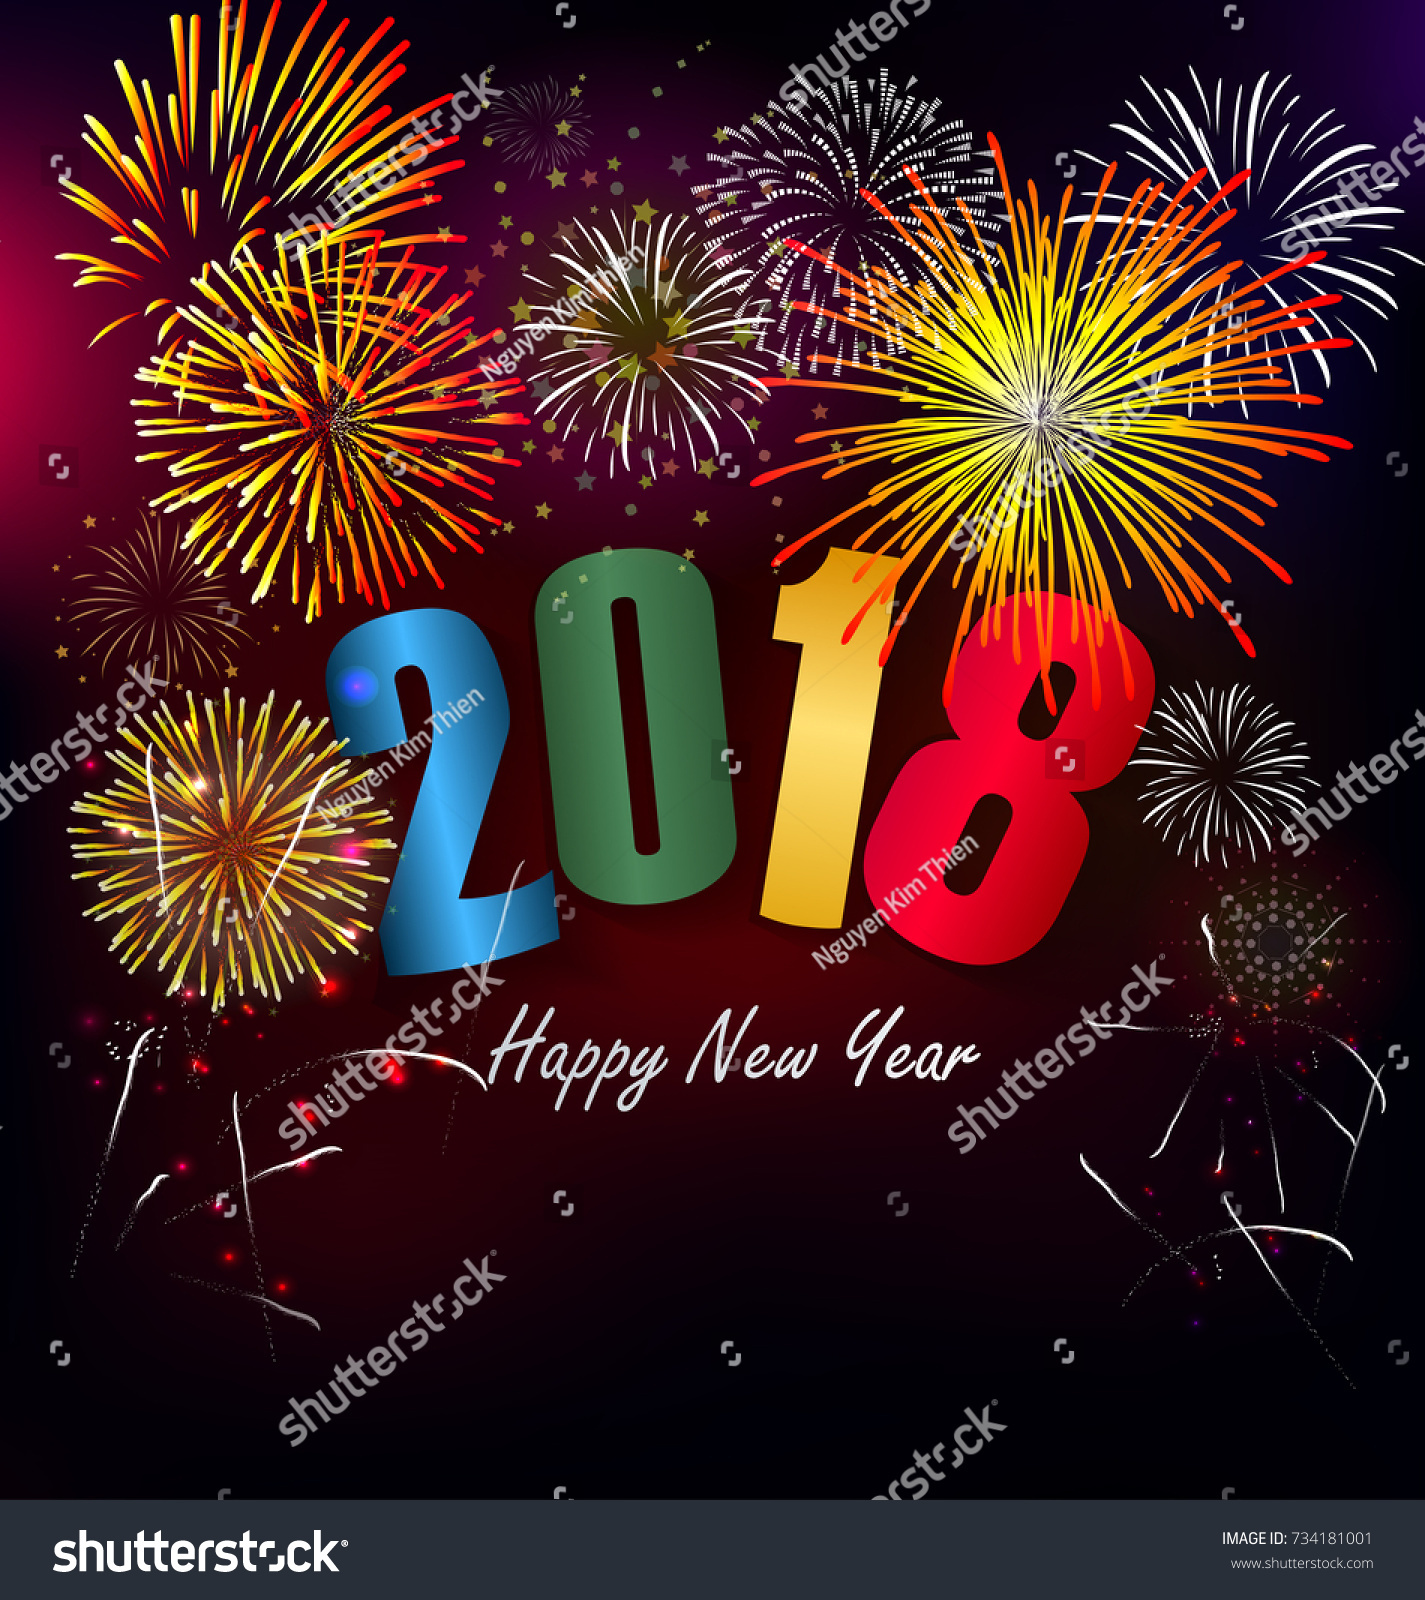 happy new year 2018 with realistic colorful fireworks background